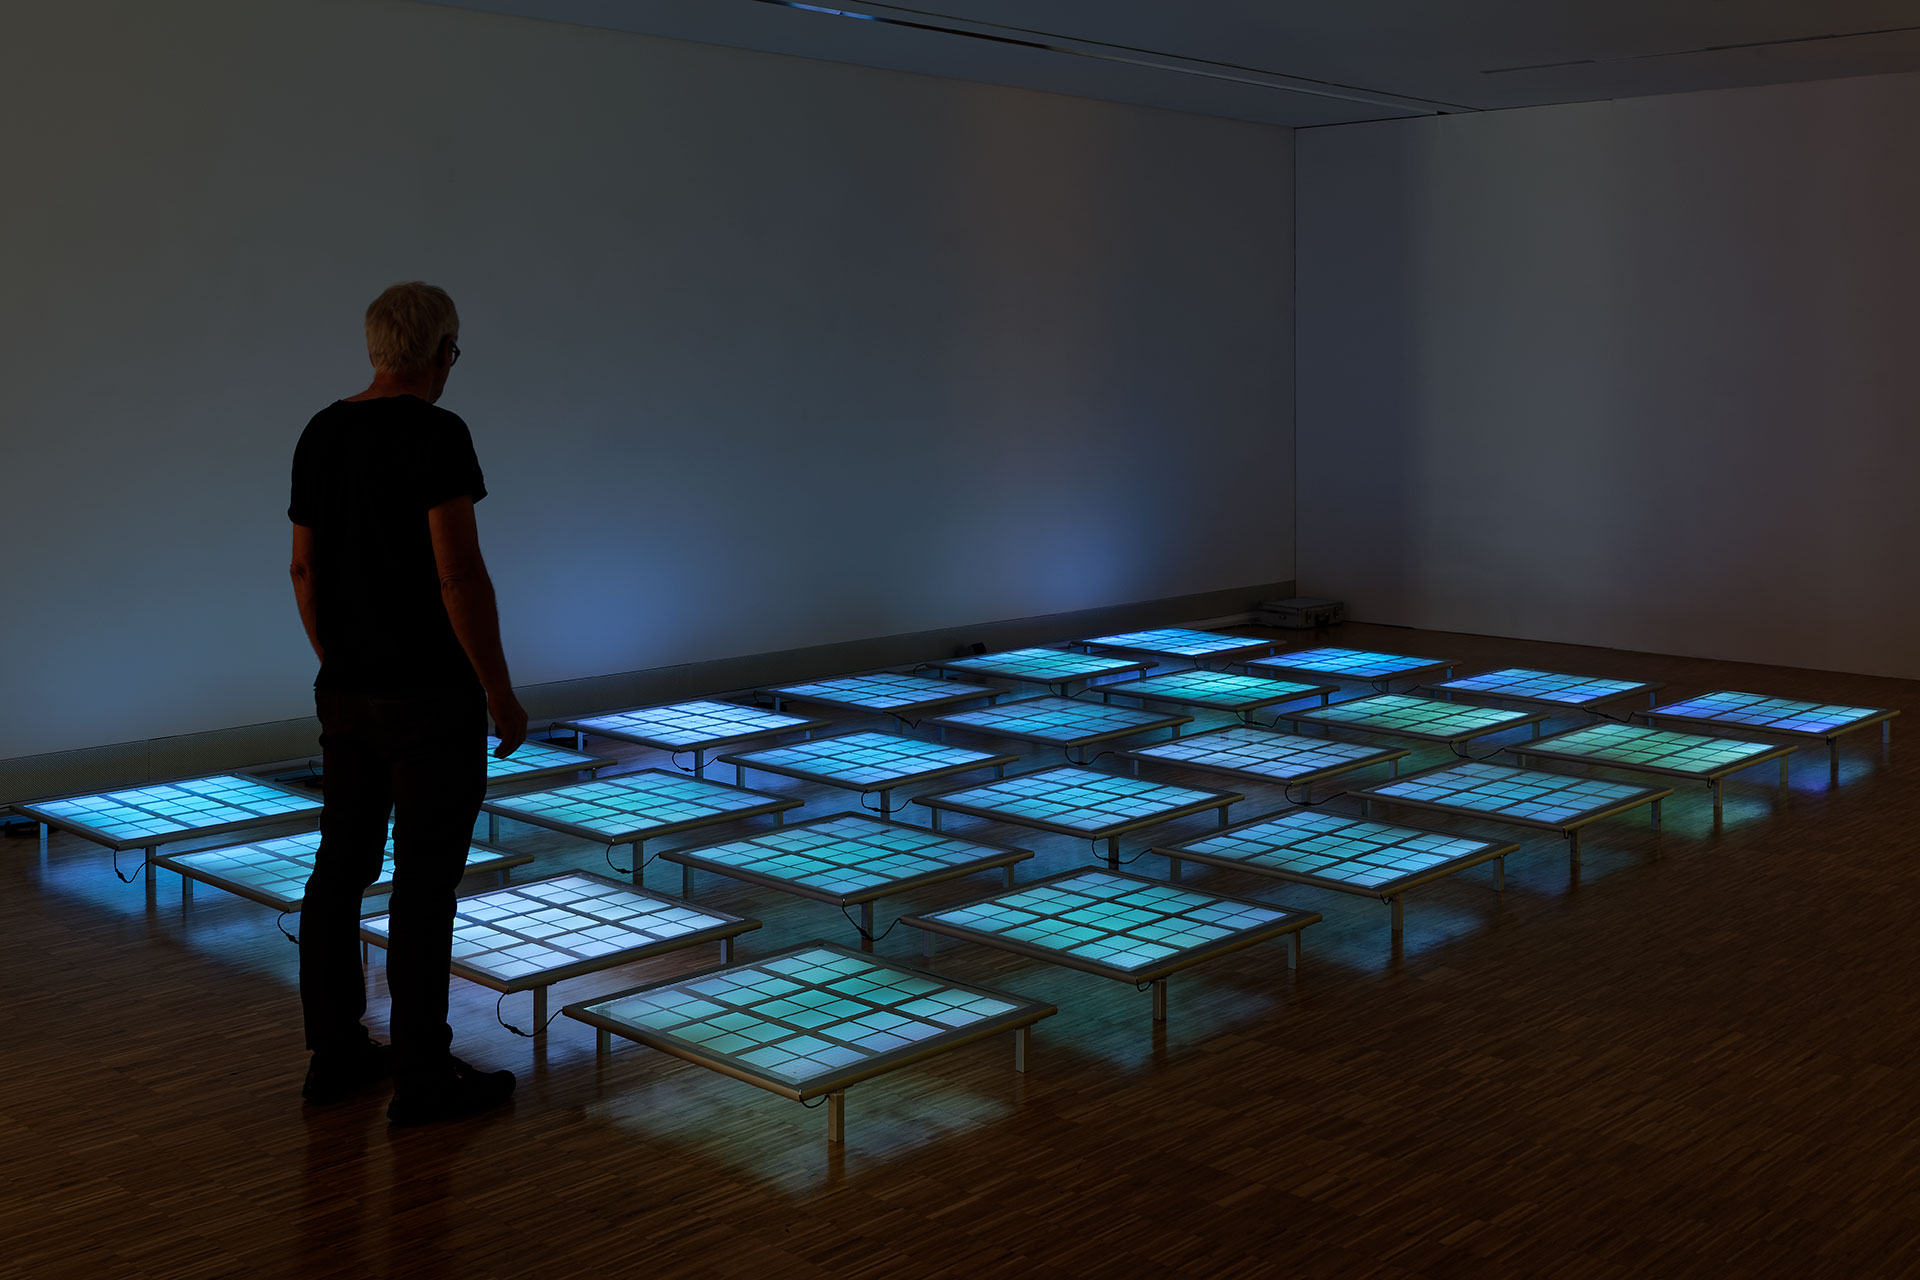 daniel_hausig_pool_II_2019_light-installation